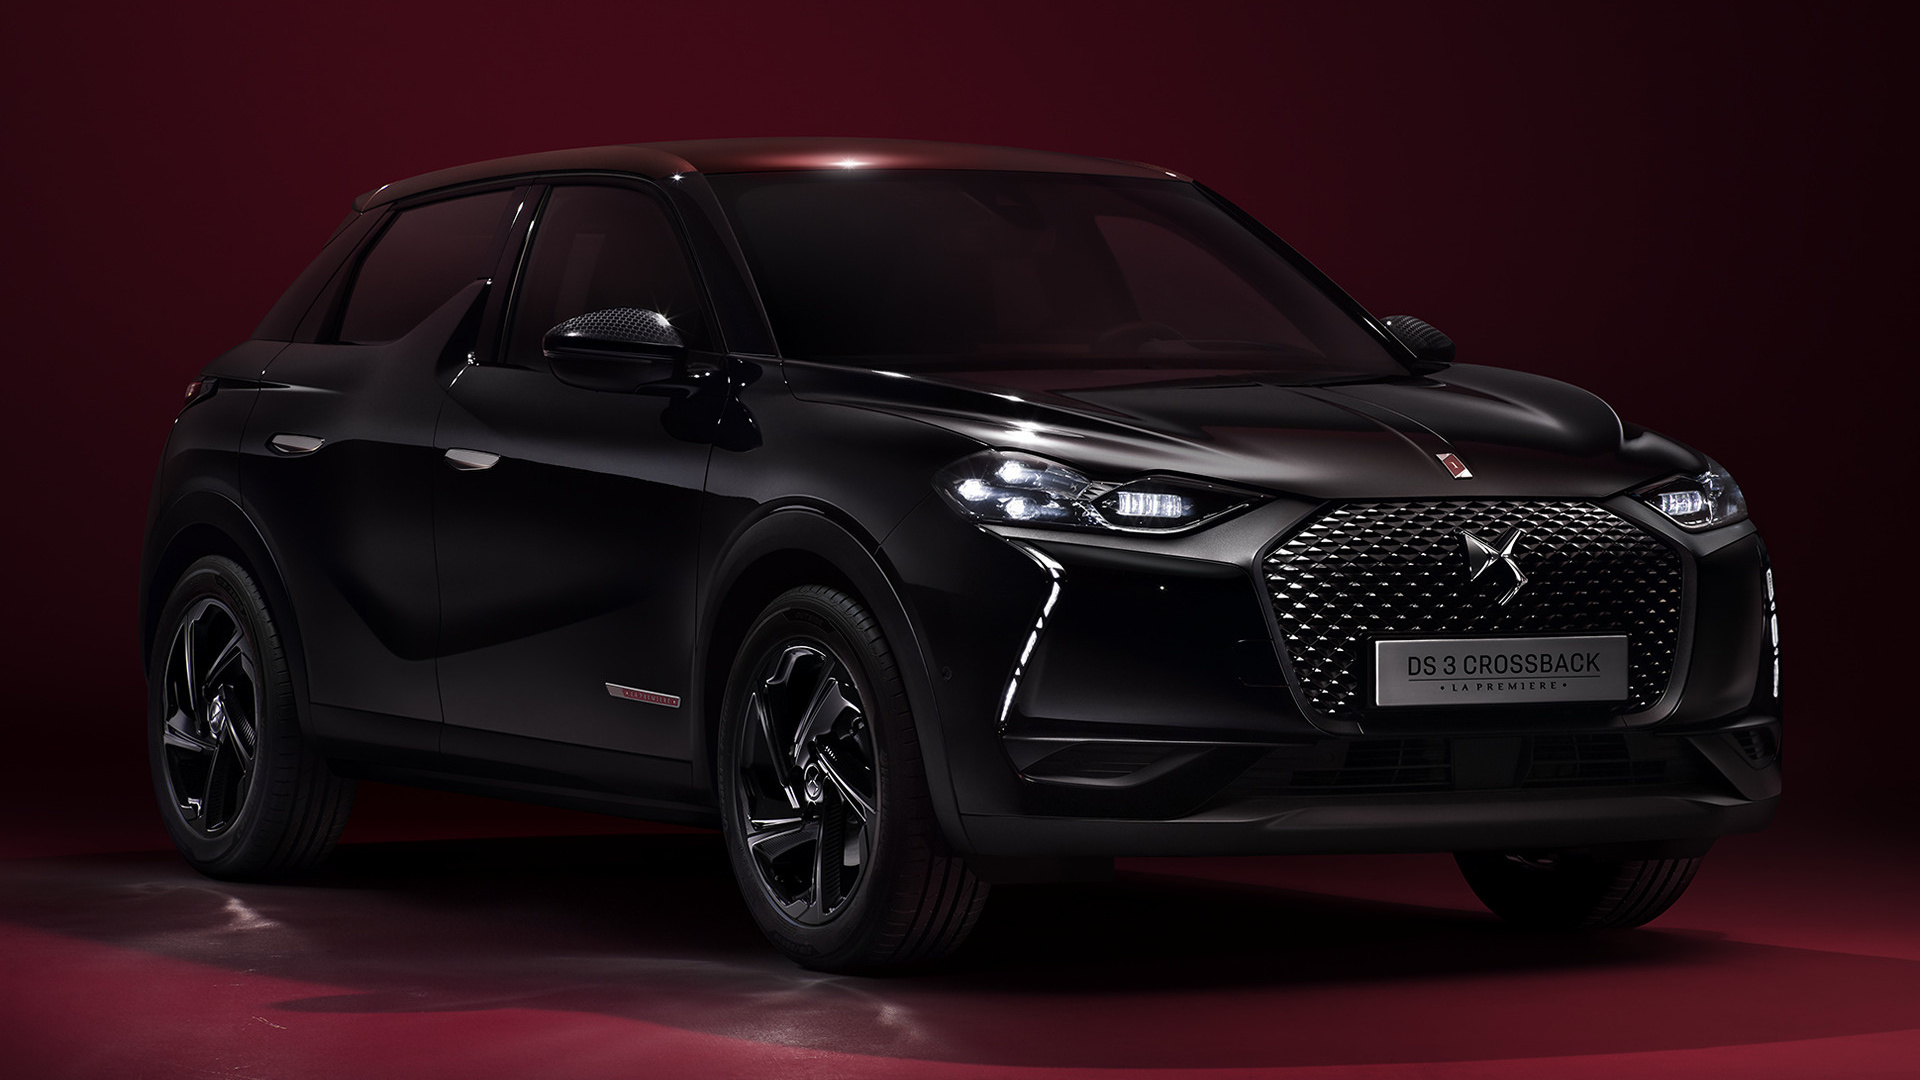 2019 ds 3 crossback la premiere wallpapers and hd images car pixel. Black Bedroom Furniture Sets. Home Design Ideas